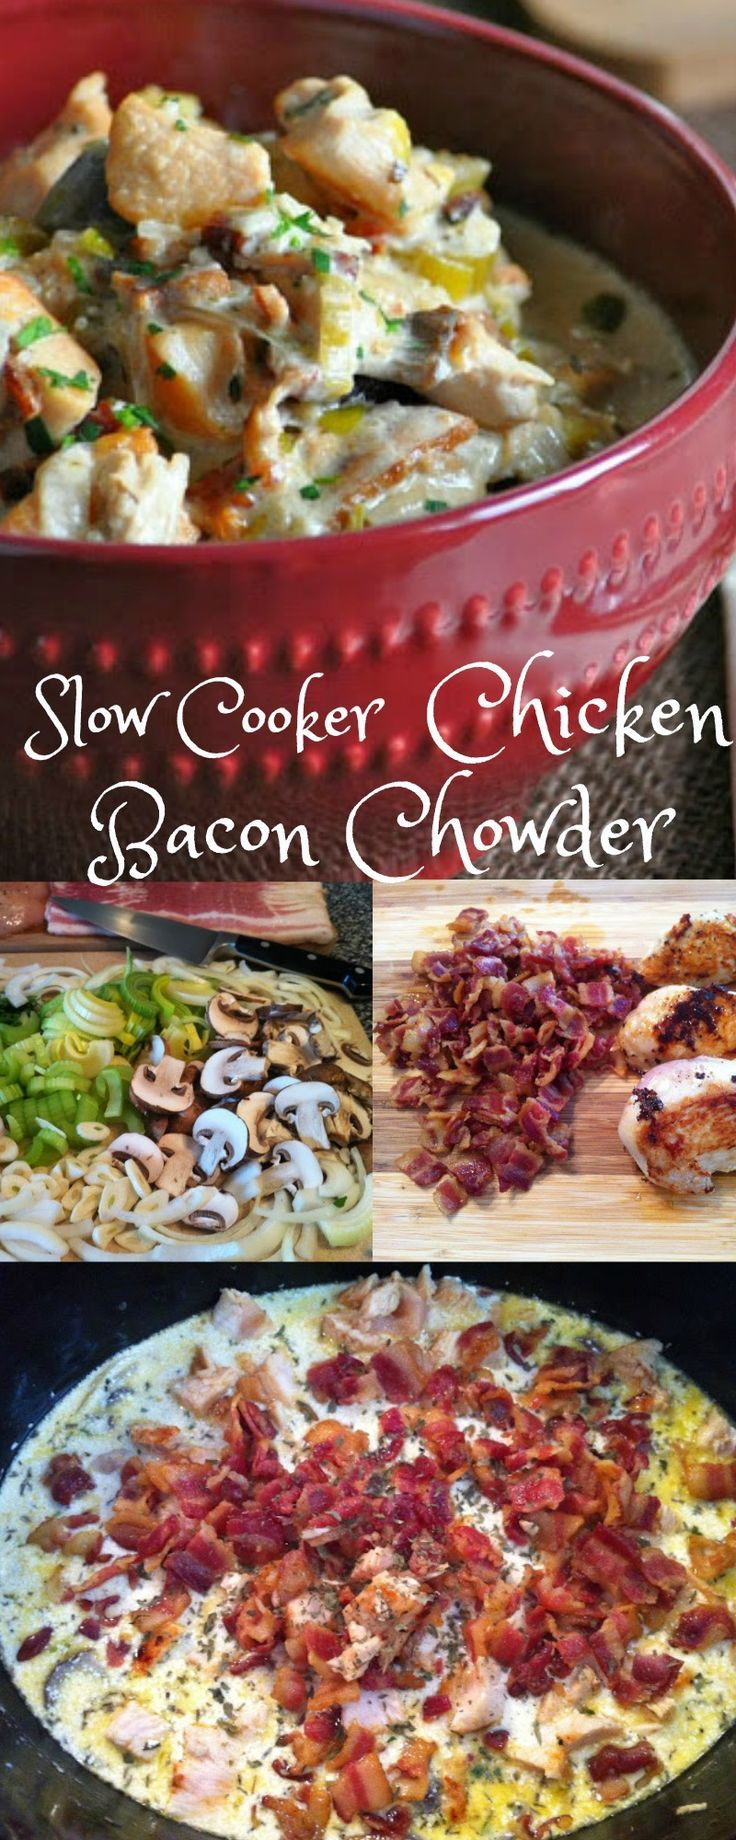 UntitledSlow Cooker Chicken Bacon Chowder - Low Carb, Gluten Free   Peace Love and Low Carb